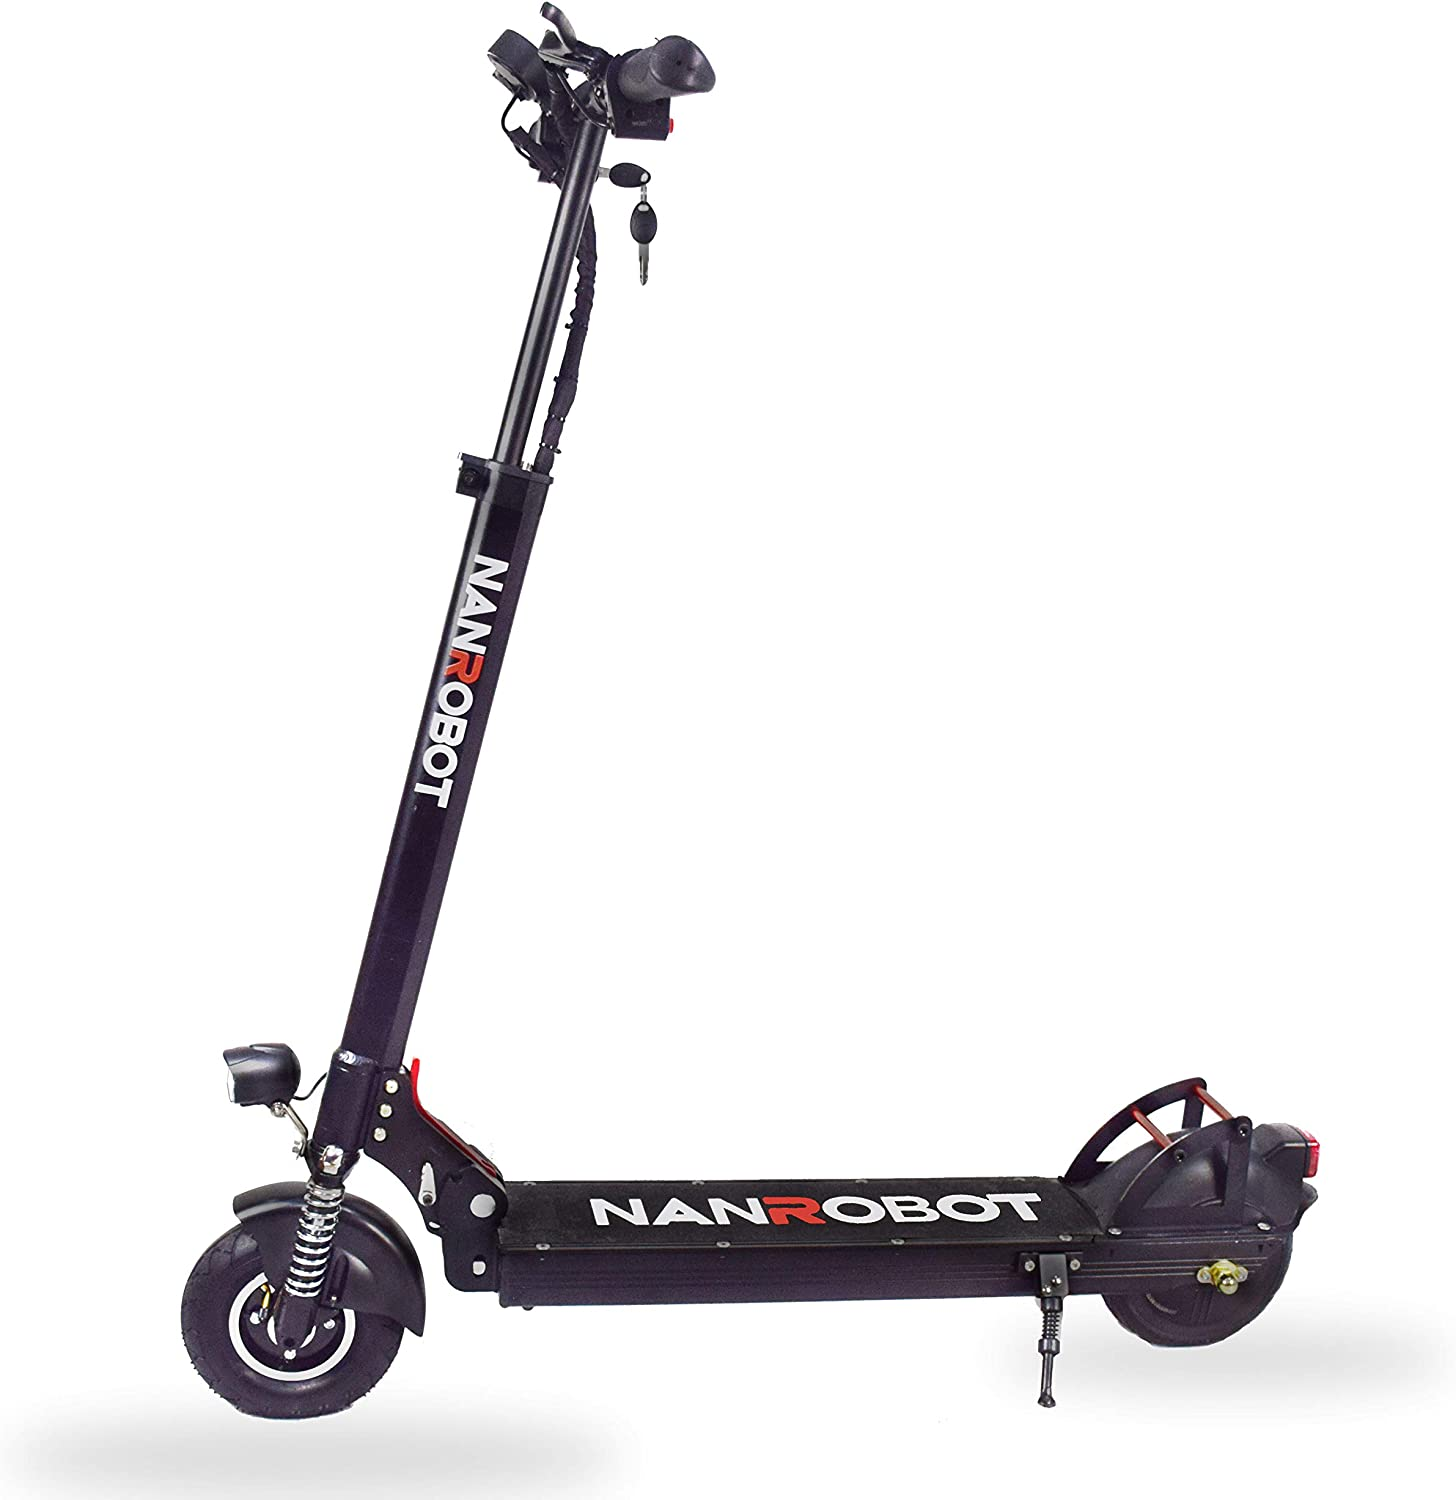 NANROBOT X4 Commuting Electric Scooter Foldable, 8 Explosion-Proof Solid Tire, 500W Motor, Max Speed 20MPH 25 Mile Range of Riding, Max Weight 260lbs